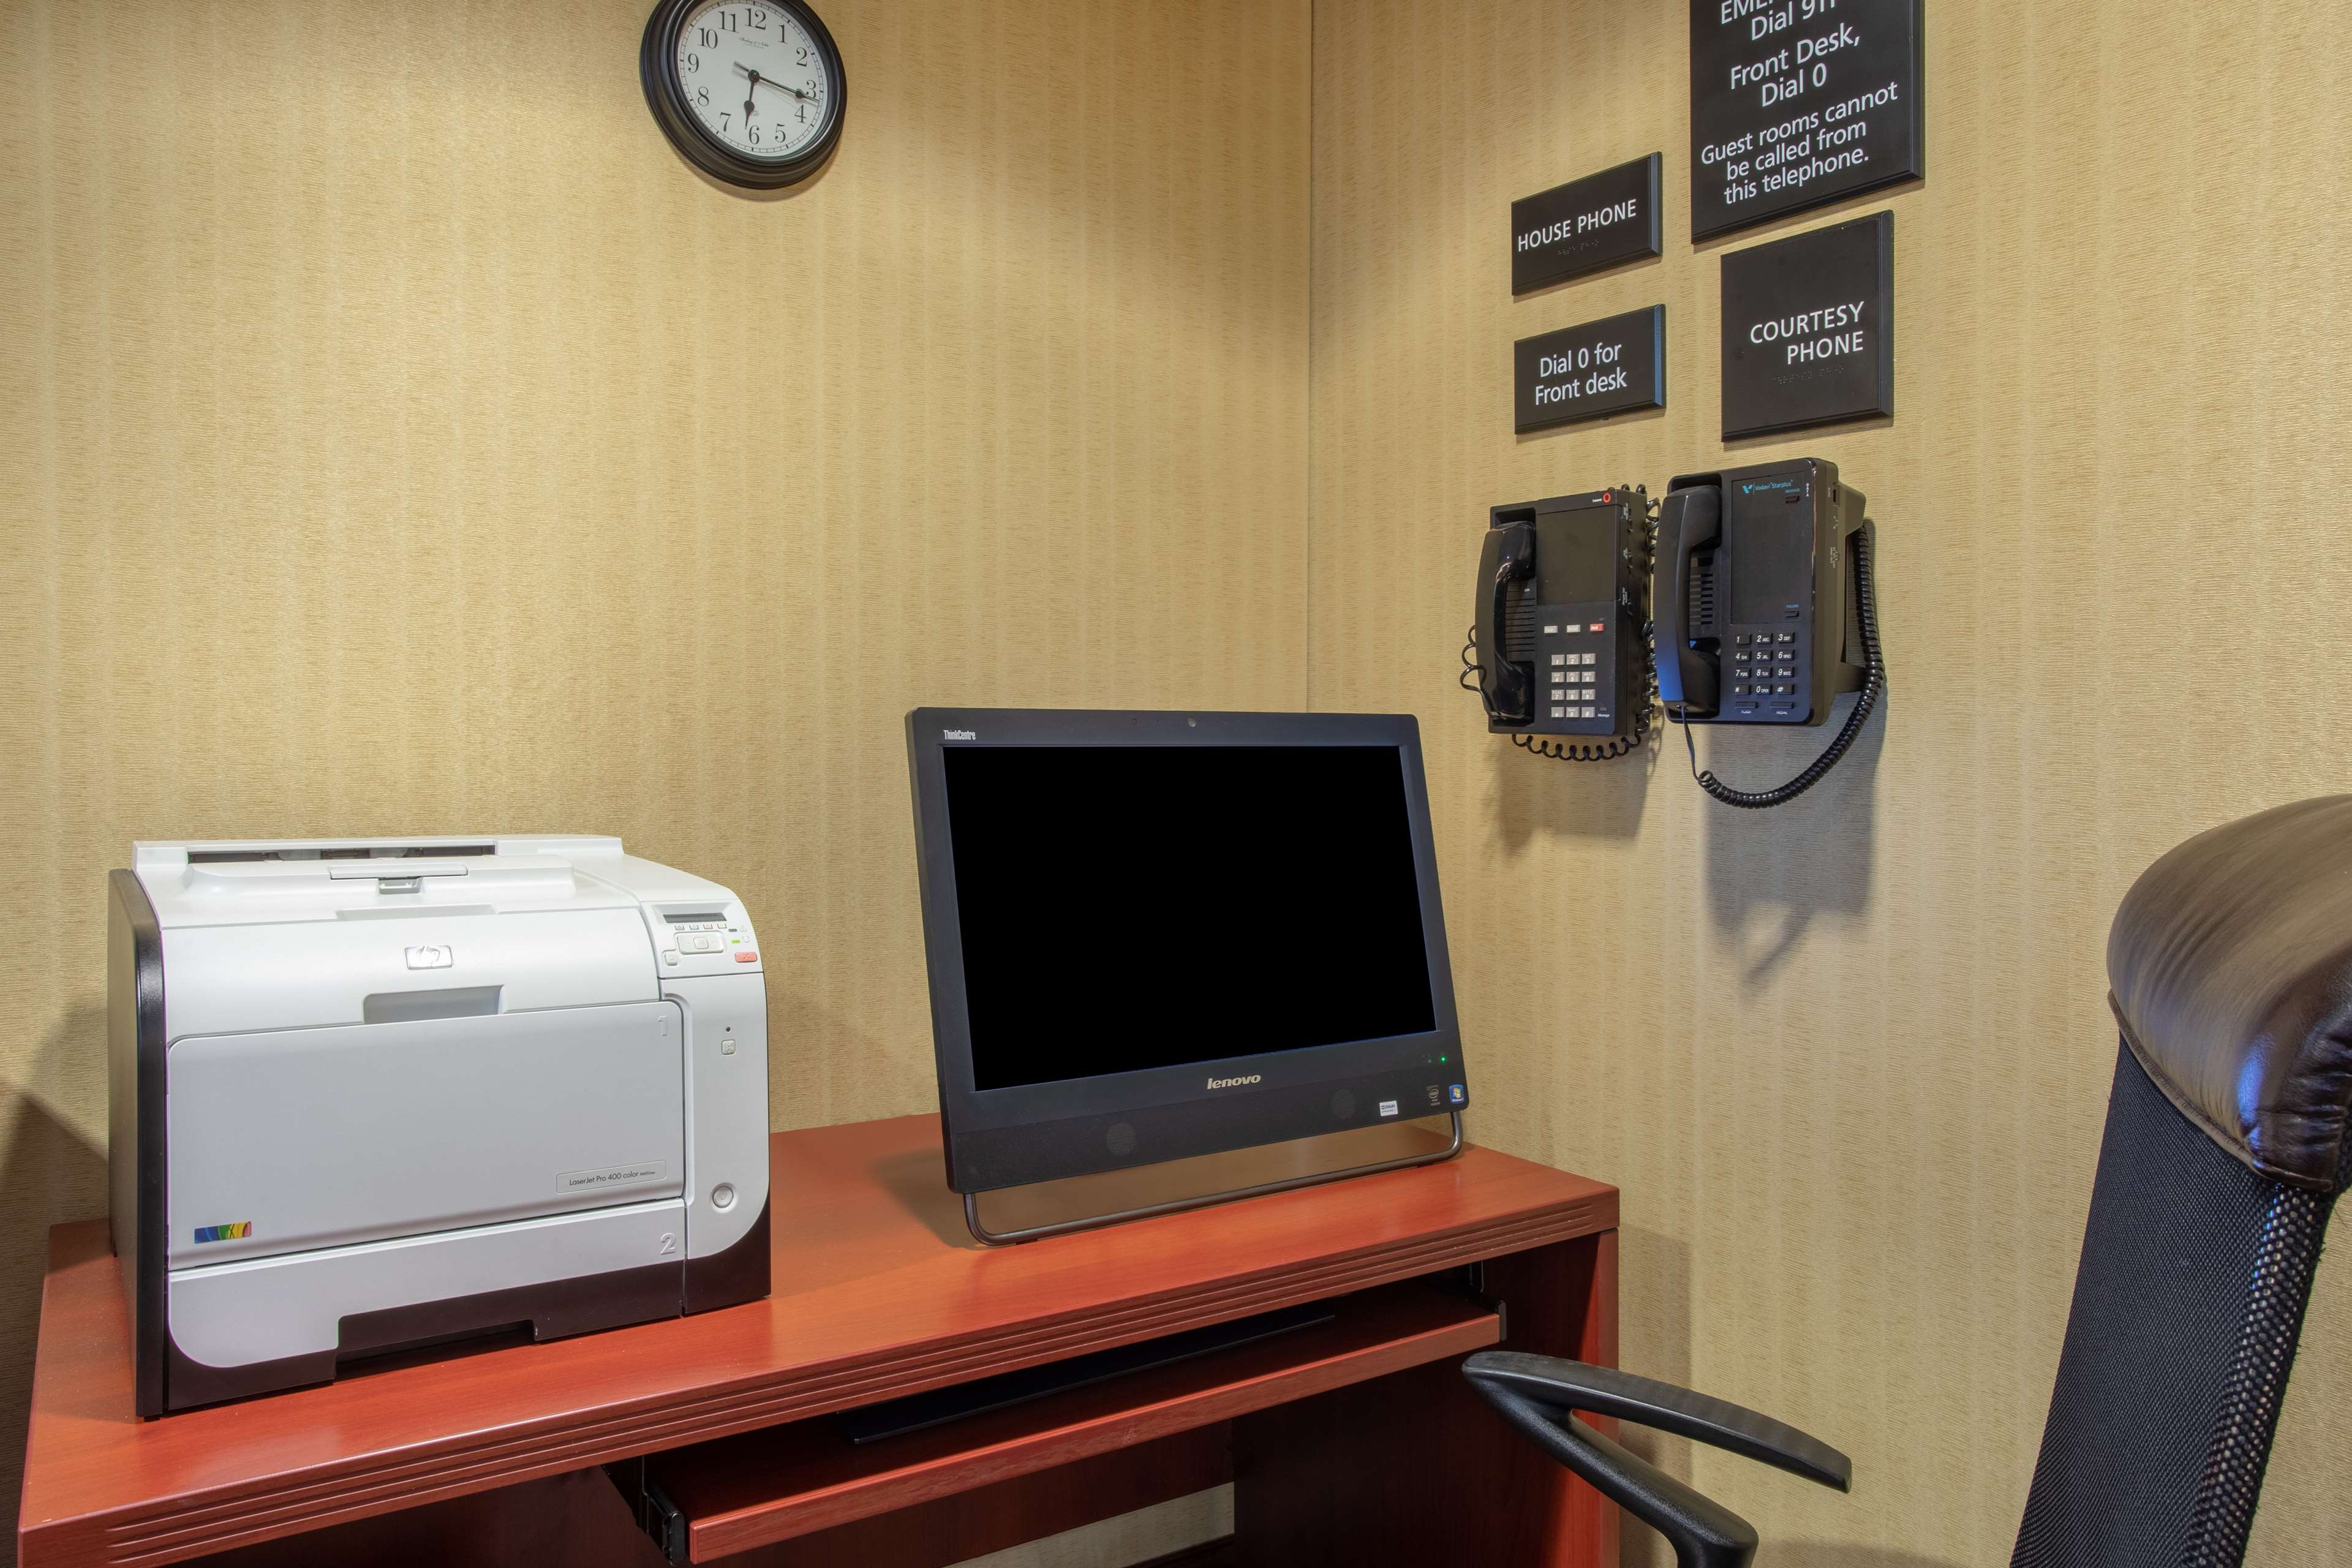 Hampton Inn Fishkill image 31